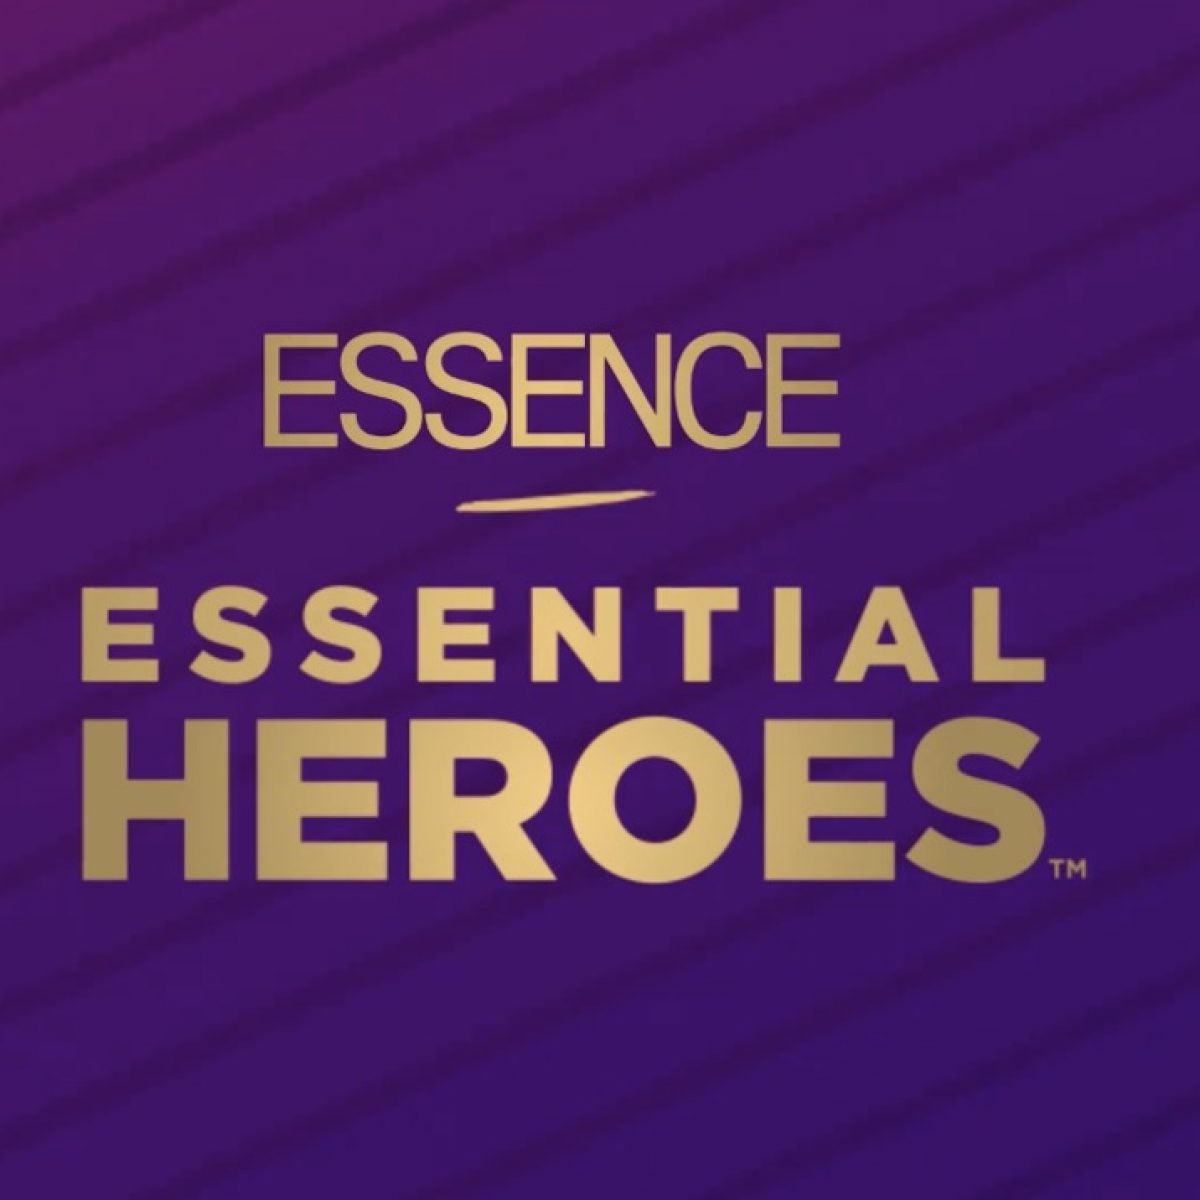 ESSENCE Essential Heroes Awards: Join Us As We Honor Extraordinary Service In 2020